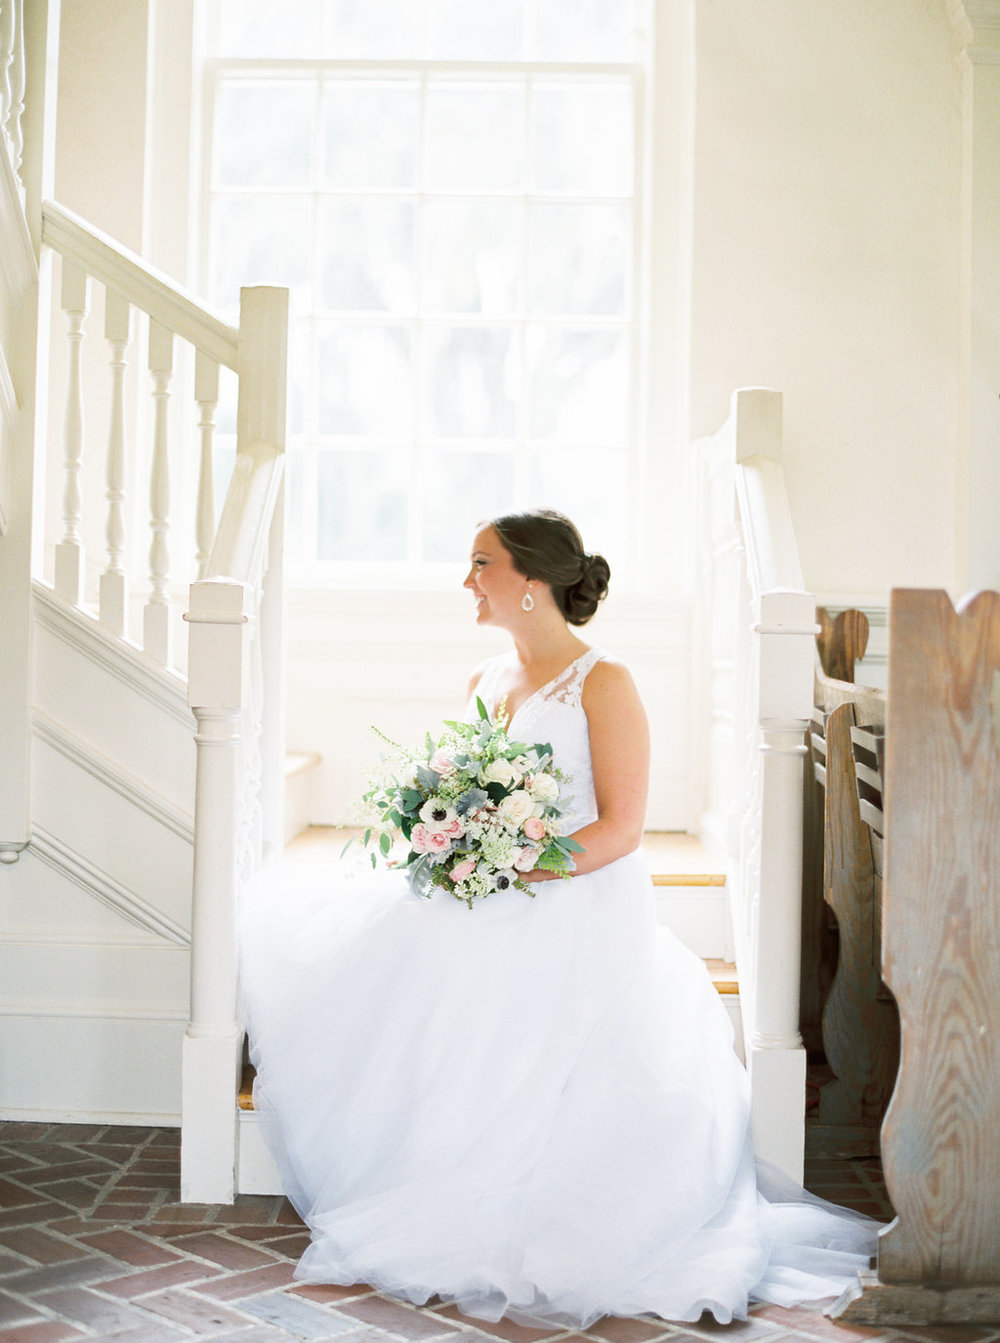 the-happy-bloom-photography-ivory-and-beau-wedding-planning-ivory-and-beau-bridal-boutique-whitfield-chapel-wedding-10-downing-wedding-savannah-wedding-historic-savannah-wedding-savannah-wedding-planner-savannah-weddings-a-to-zinnias-13.jpg